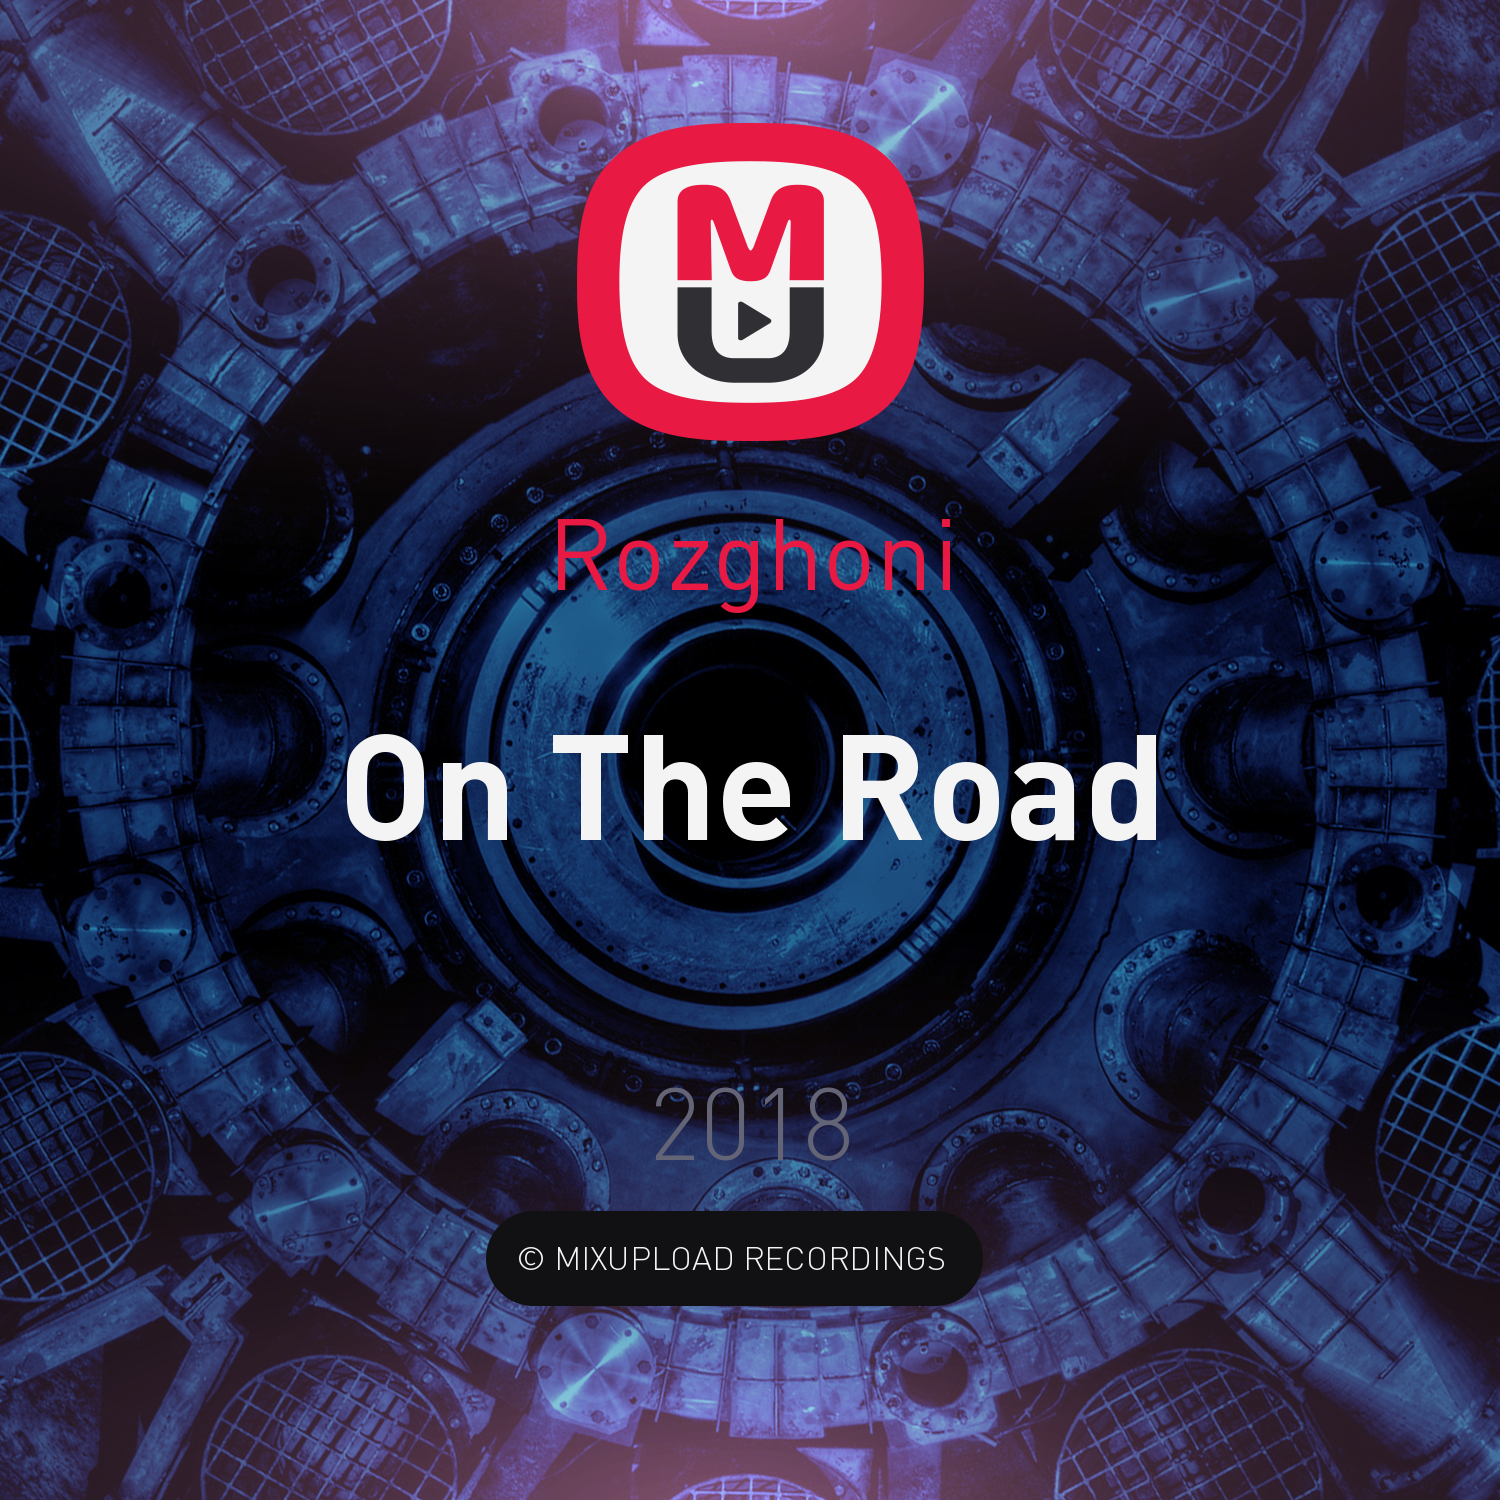 Rozghoni - On The Road (Live)